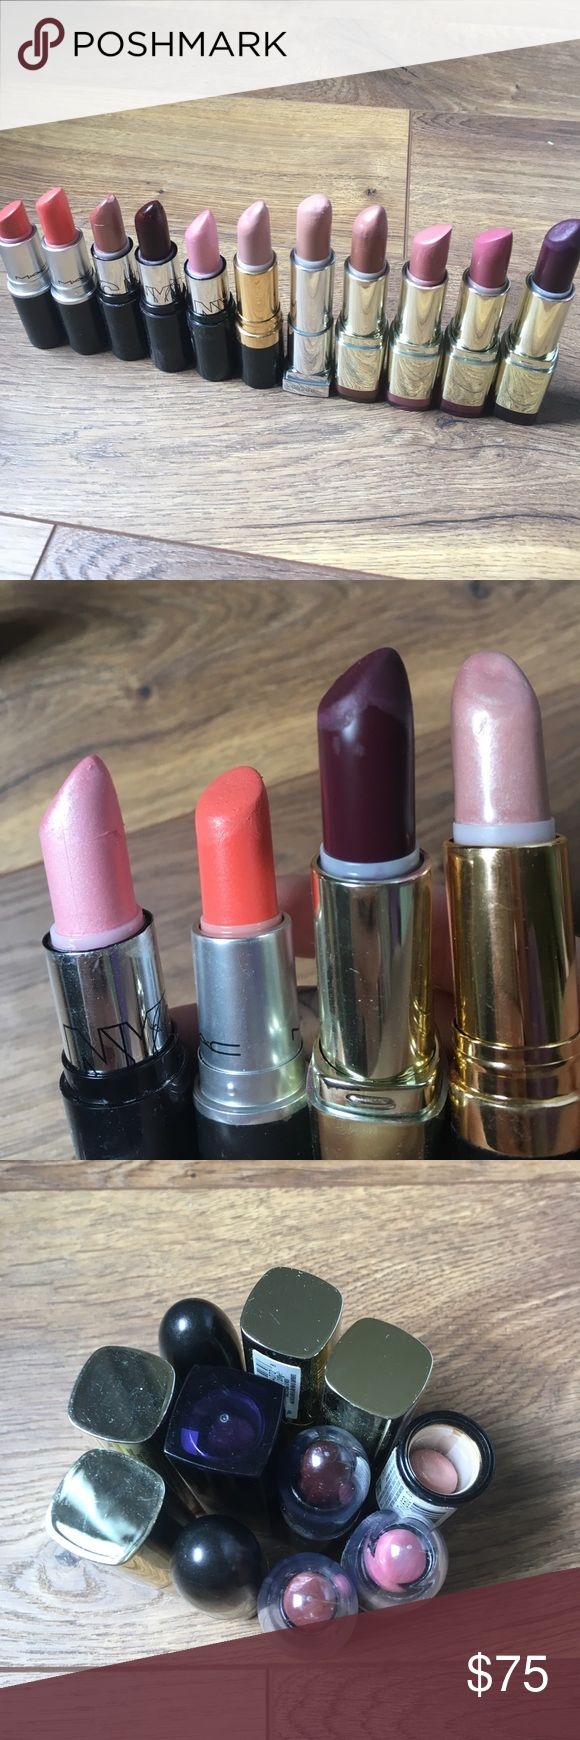 lipstick bundle ✨ MAC A55 Sushi Kiss & A72 Cremesheen Ravishing; NYC 320 Mahogany, 301 Cafe, & 312 Chiffon; Maybelline 755 Nude Thrill; Revlon Pearl 025 Sky Line Pink; Milani 55 Bahama Beige, 43 Pretty Natural, 26 Nude Creme, 70 Matte Fearless • will be sanitized prior to shipping • NOT TRADING OR MODELING • SERIOUS OFFERS ONLY PLEASE • LOWBALL OFFERS WILL BE BLOCKED   20% of all proceeds will go to ASPCA to help fight animal cruelty 🐶🐱🦊🐷 Makeup Lipstick